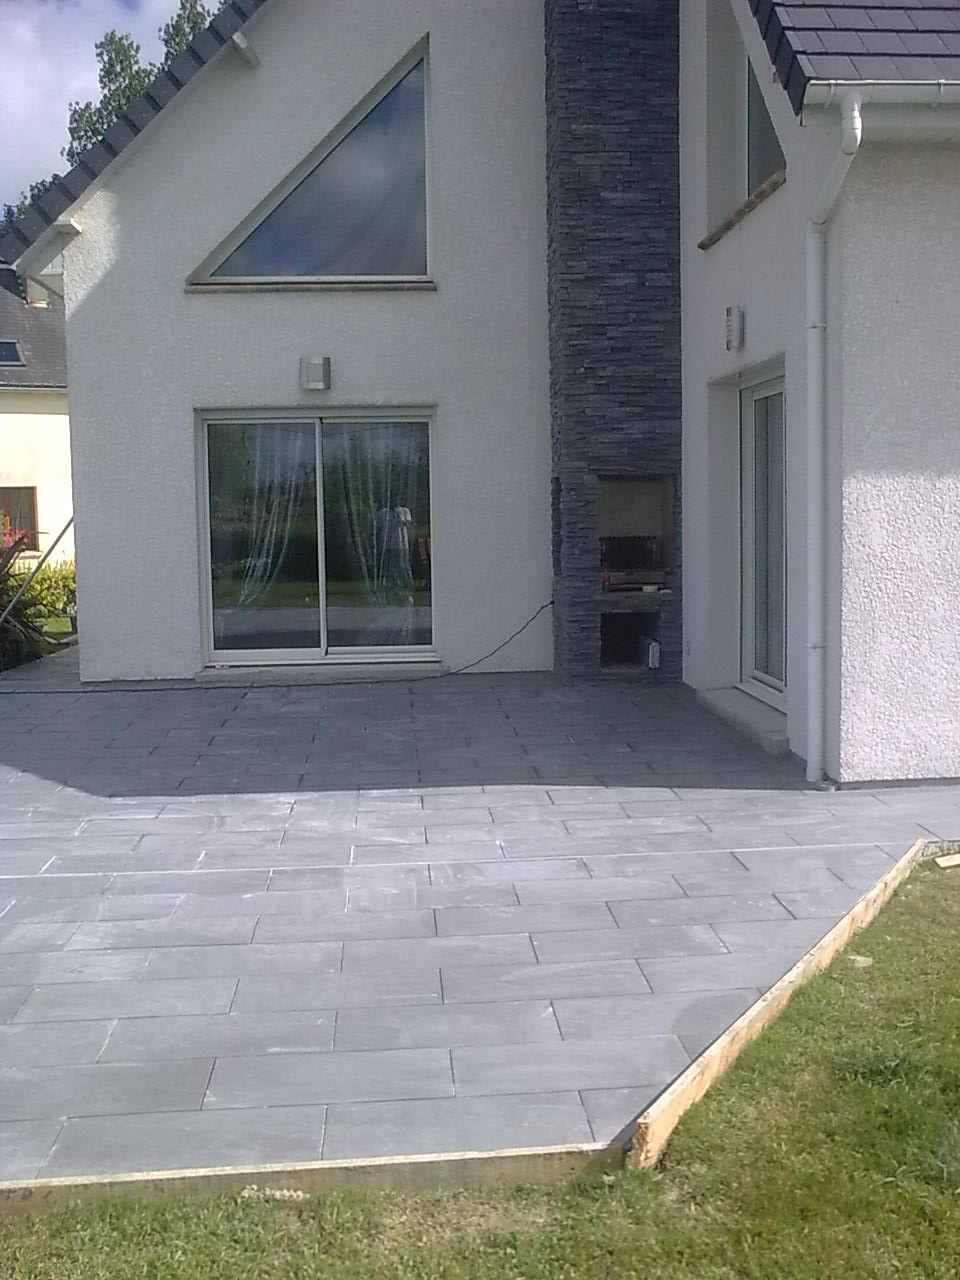 Video refaire joints carrelage devis gratuit travaux for Casa carrelage rennes